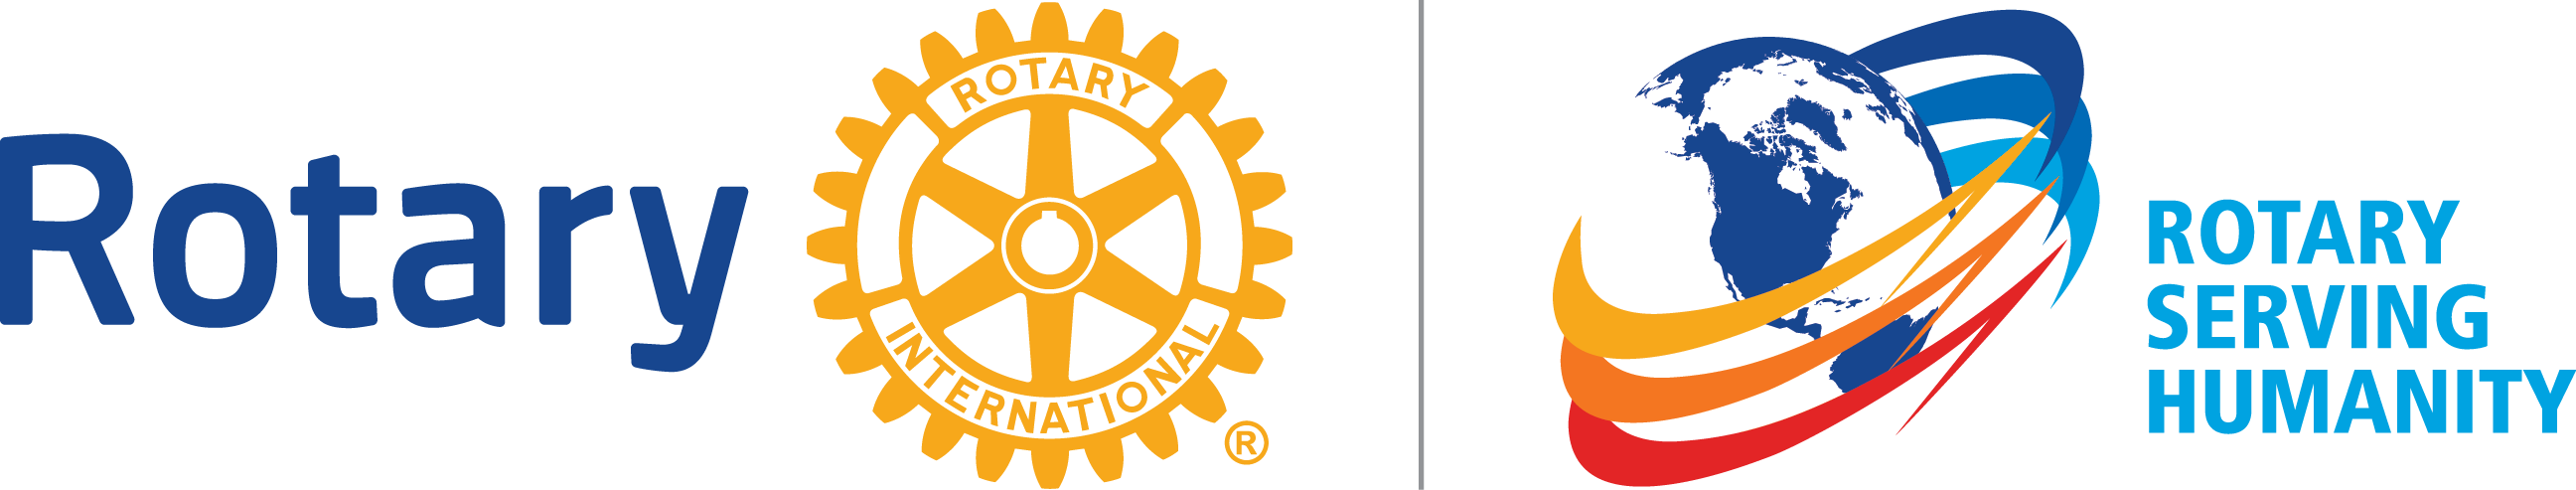 Rotary Serving Humanity